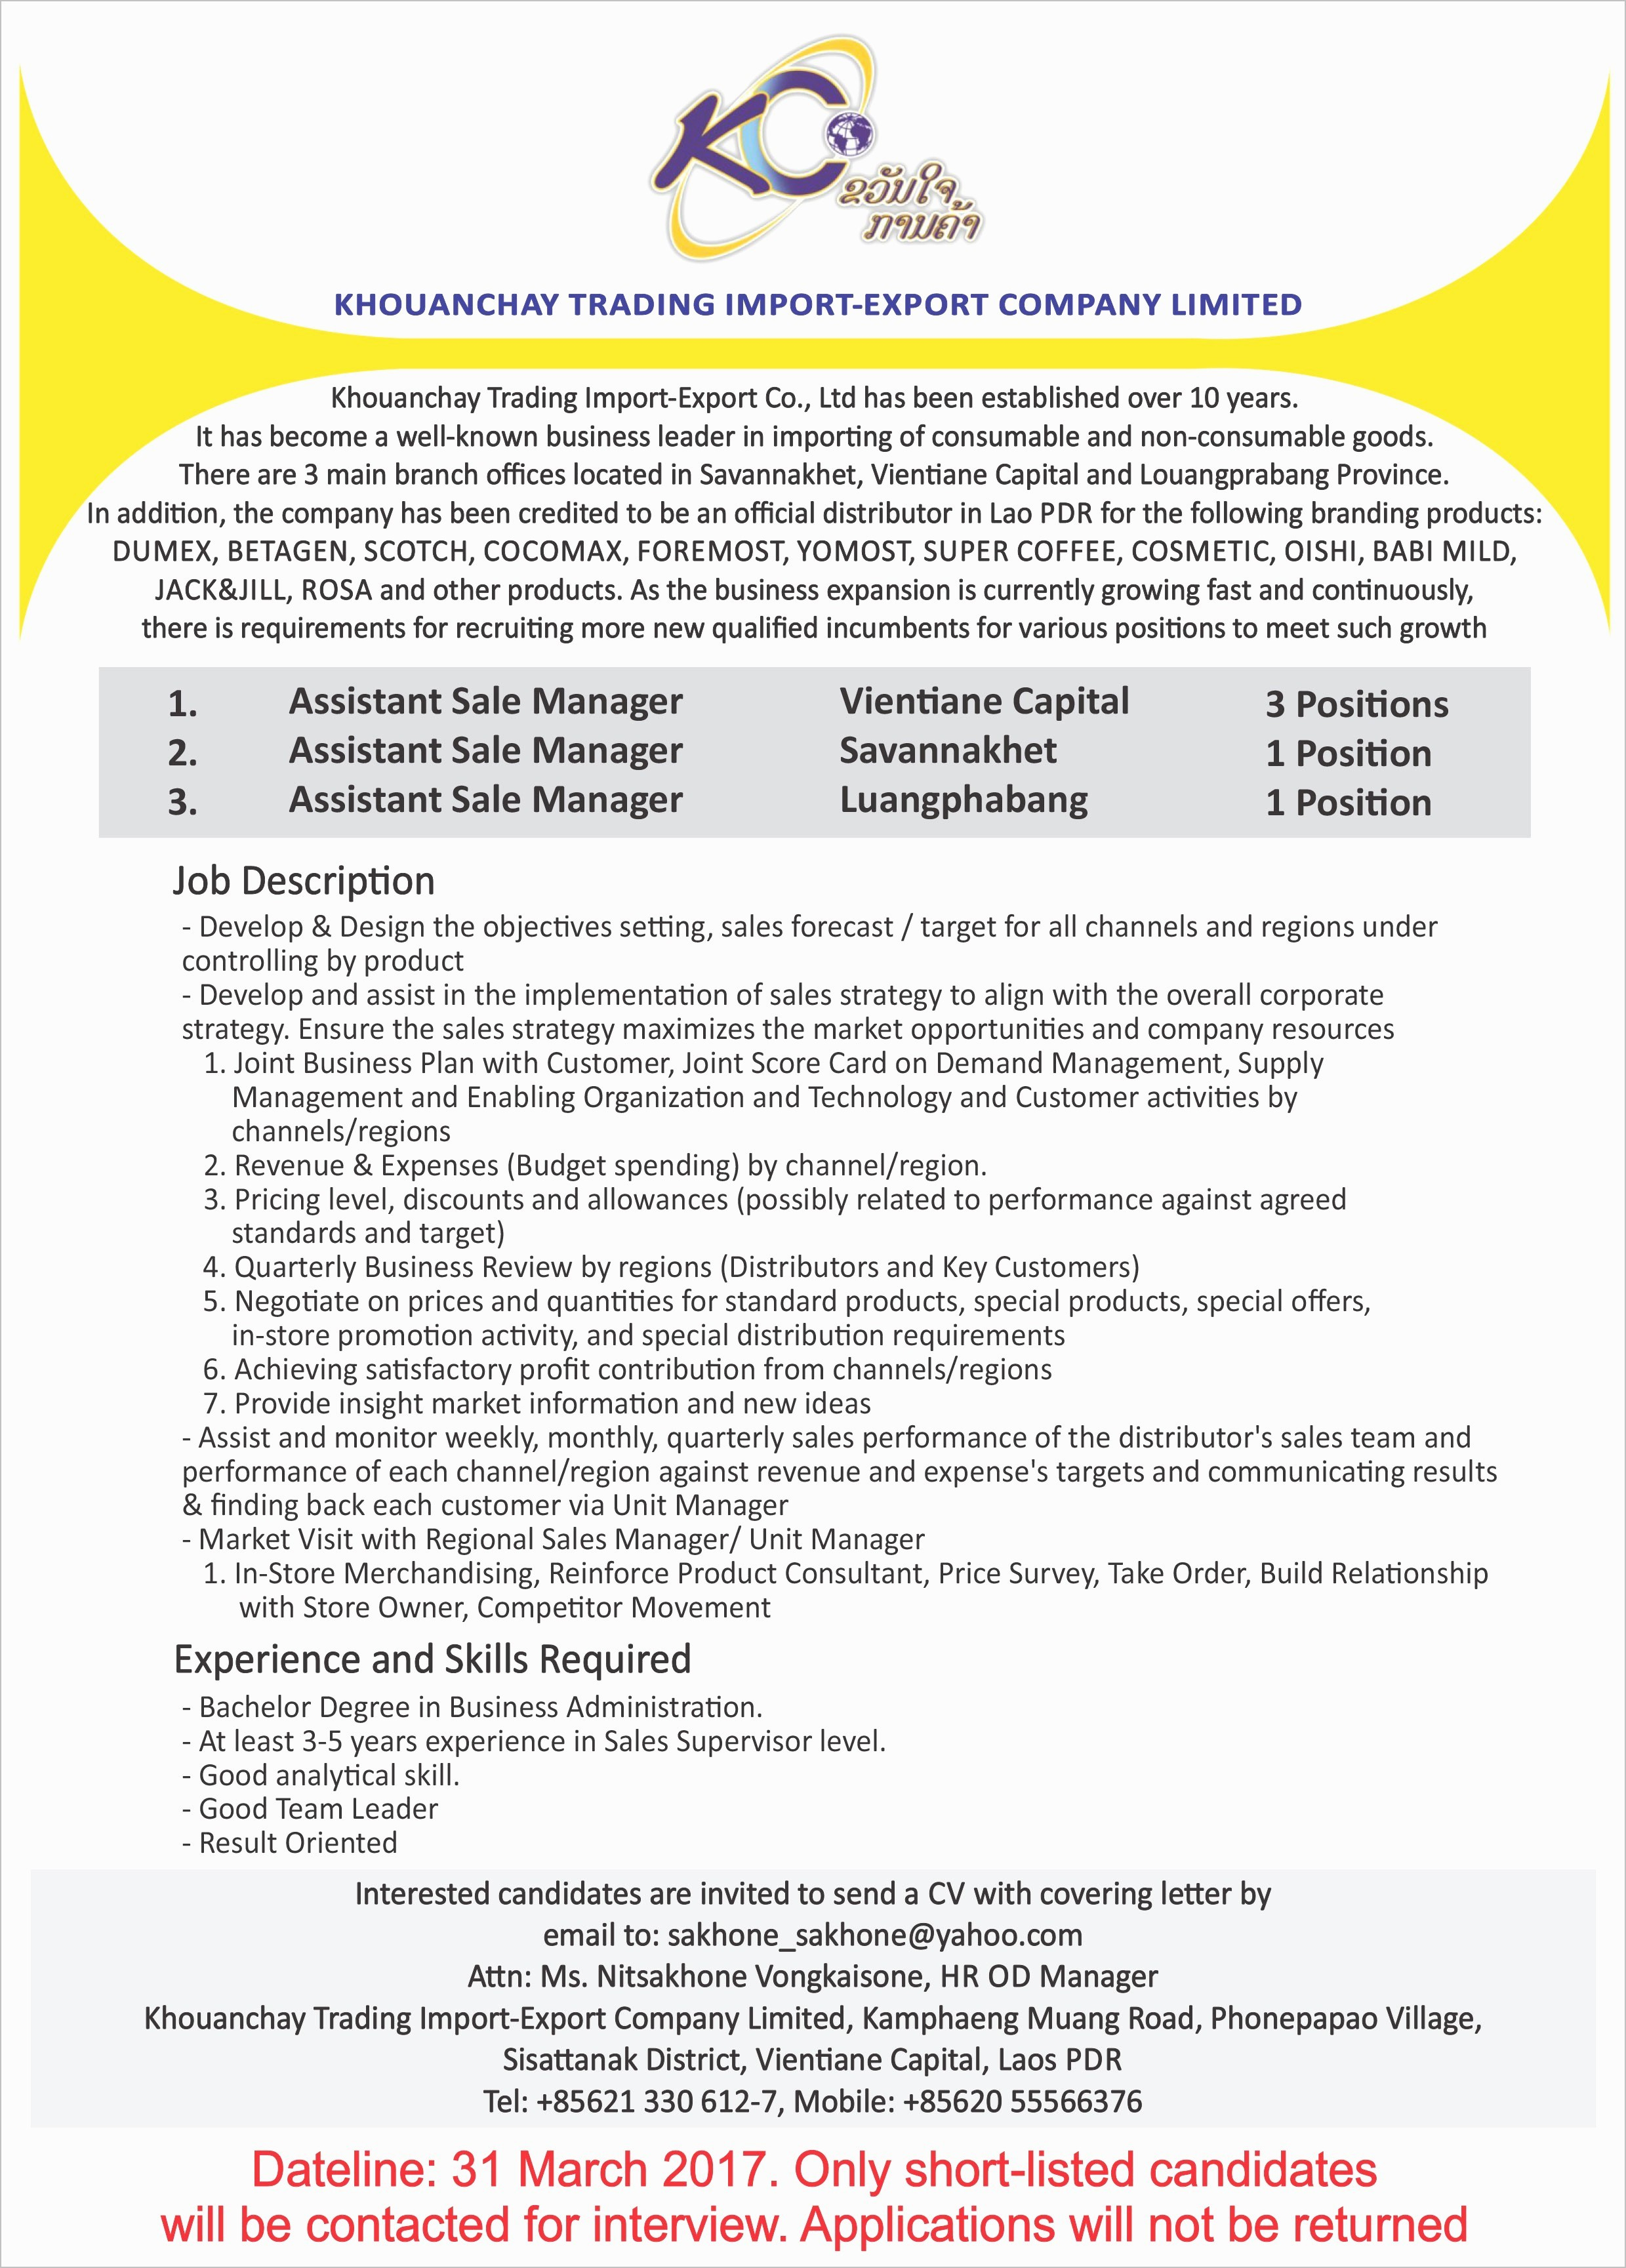 yahoo ceo resume template example-Yahoo Ceo Resume 14-p